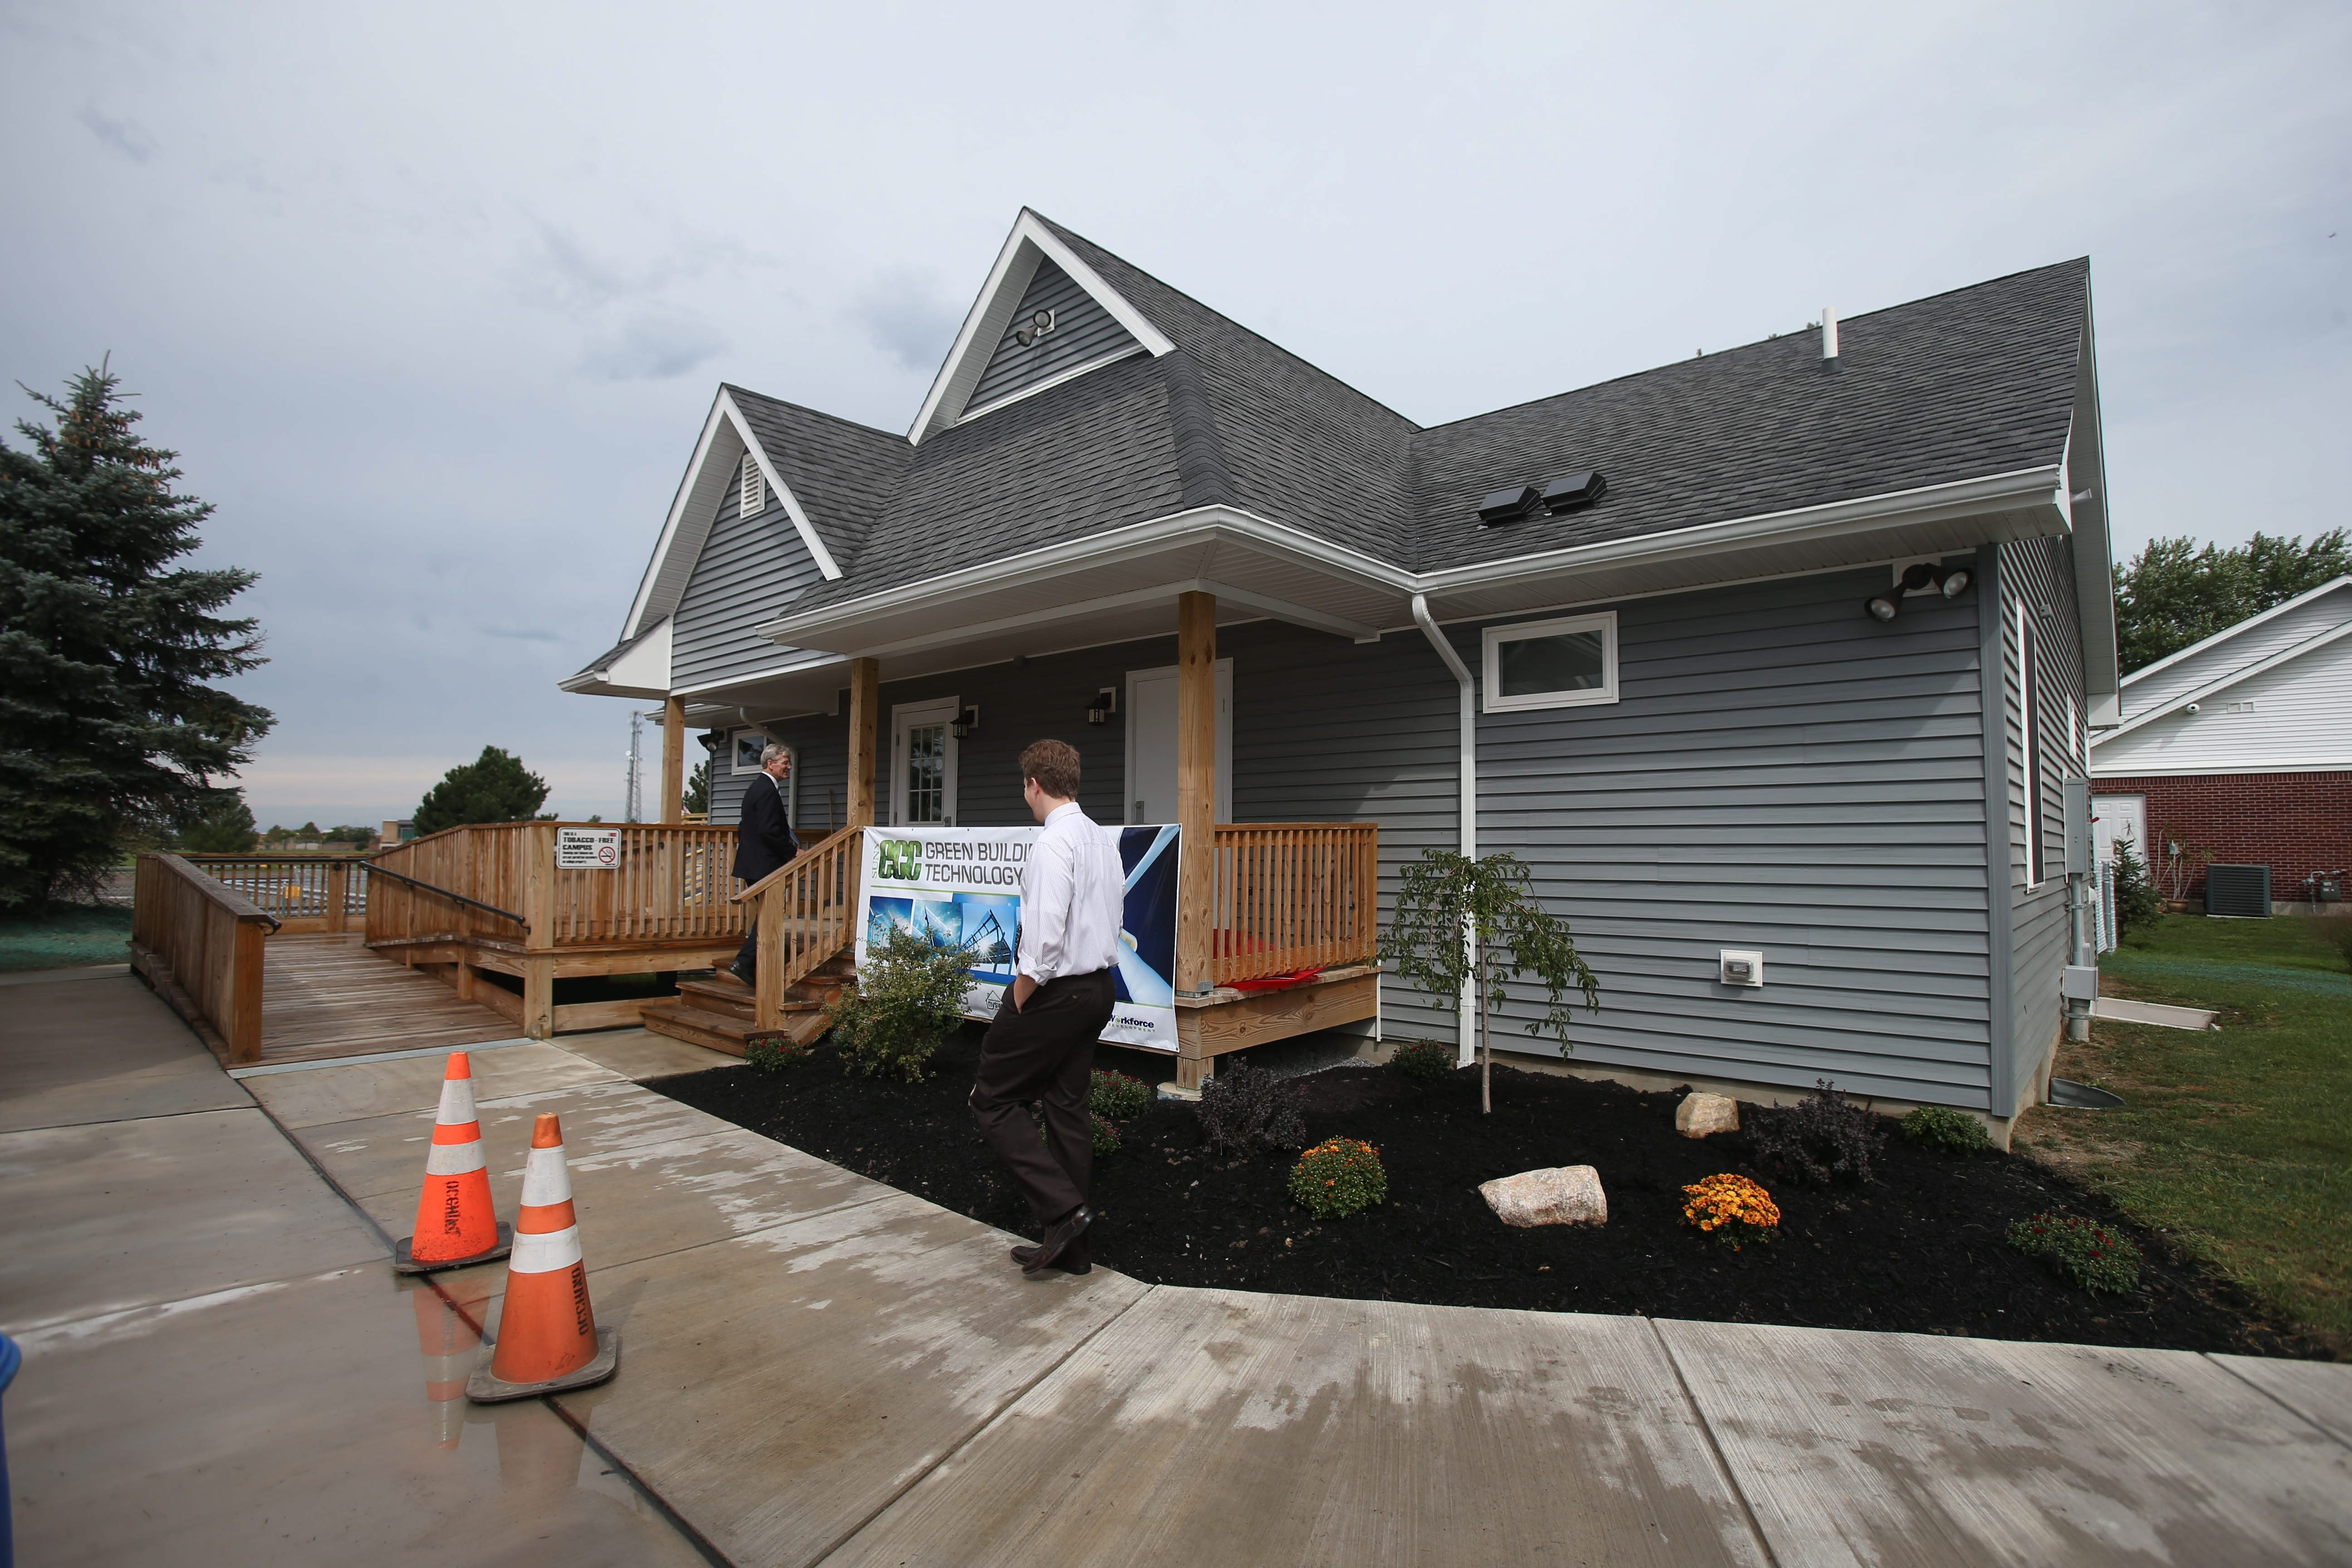 This new house on Abbott Road in Orchard Park, next to ECC's South Campus, will train students to install and repair solar, wind and geothermal technologies, all of which the home utilizes.